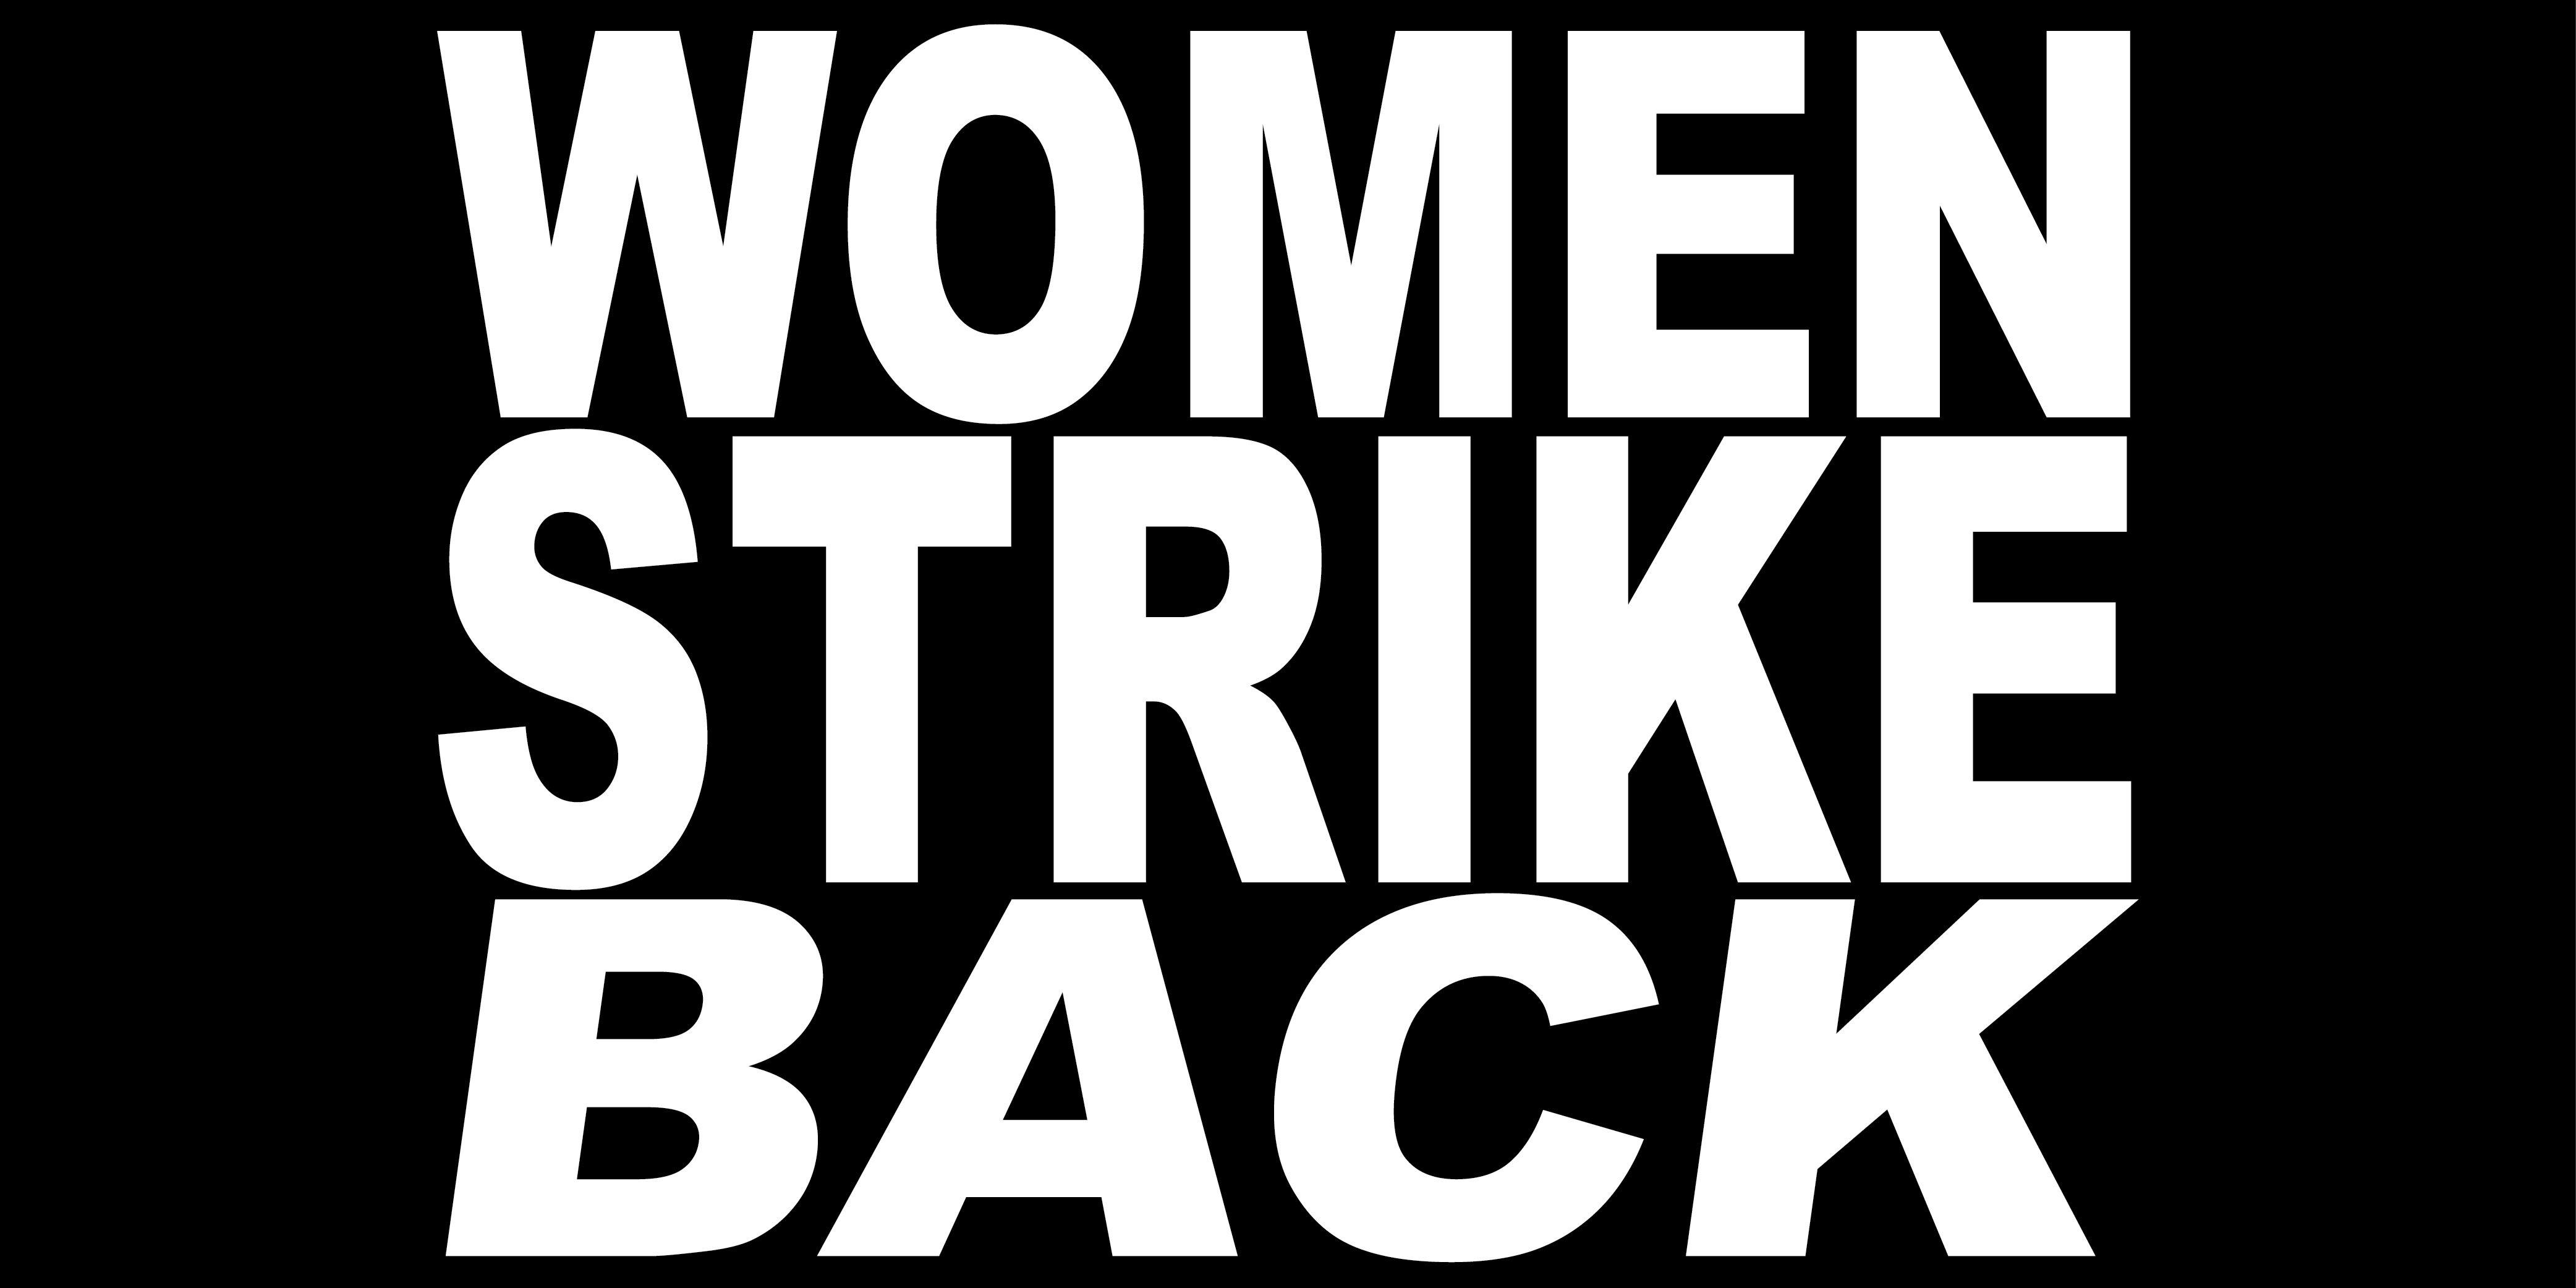 WOMEN STRIKE BACK (ITALICS)